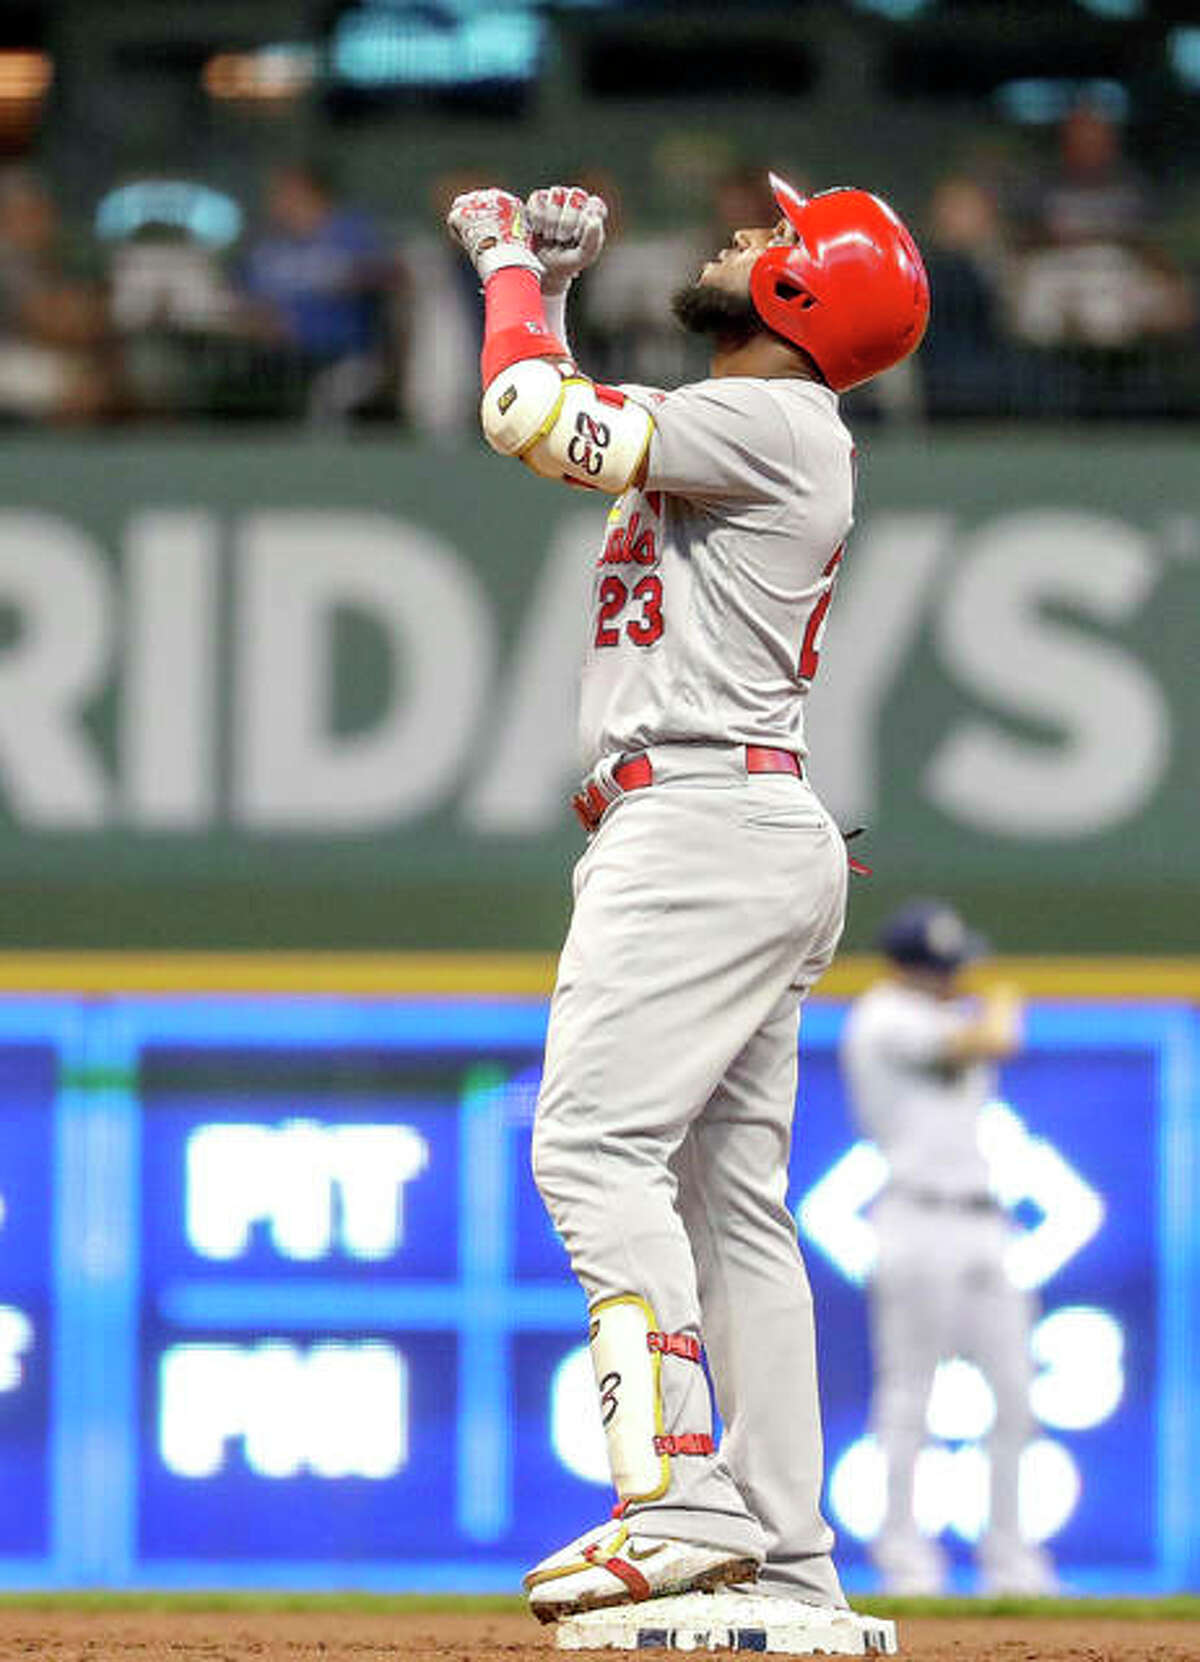 The Cardinals' Marcell Ozuna reacts after hitting a three-run scoring double in the second inning Monday night's game against the Brewers in Milwaukee.